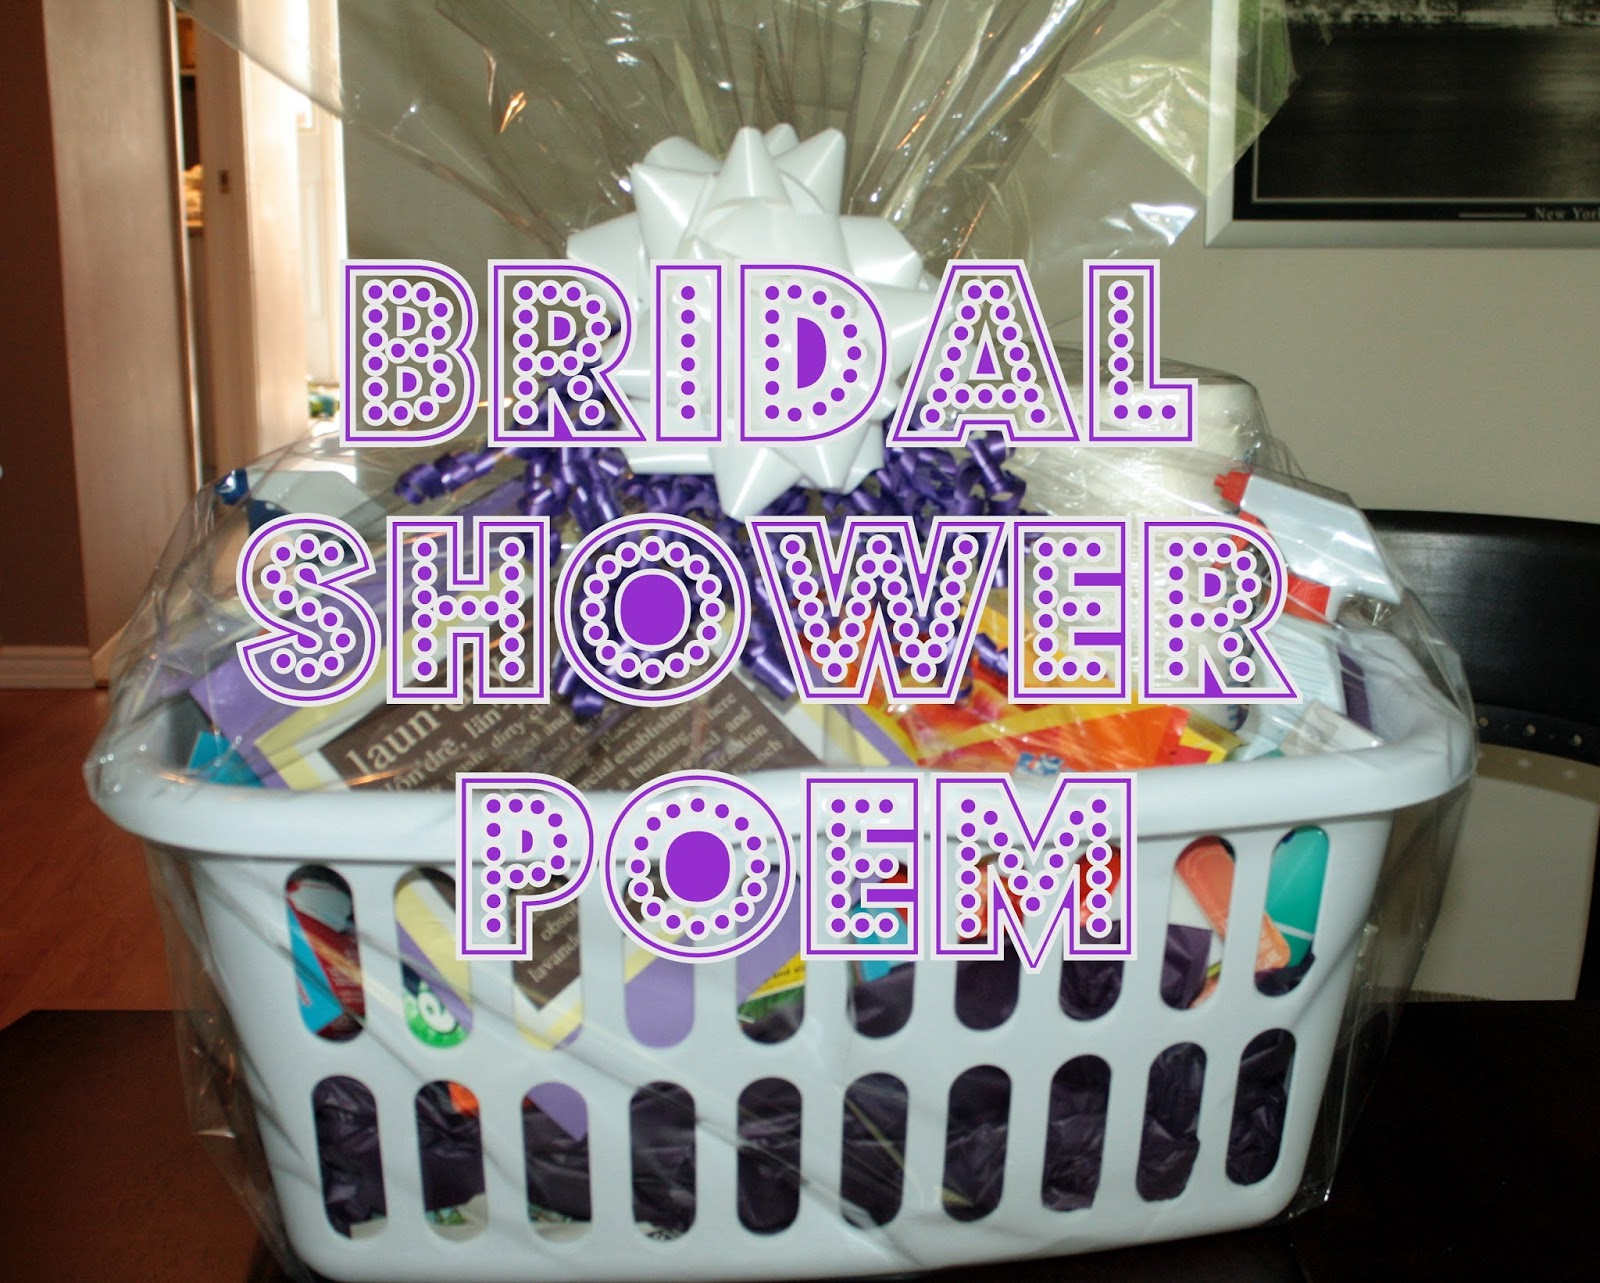 Bridal Shower Gift Basket Ideas For Bride : GingerBabyMama: Fun, Practical Bridal Shower Gift